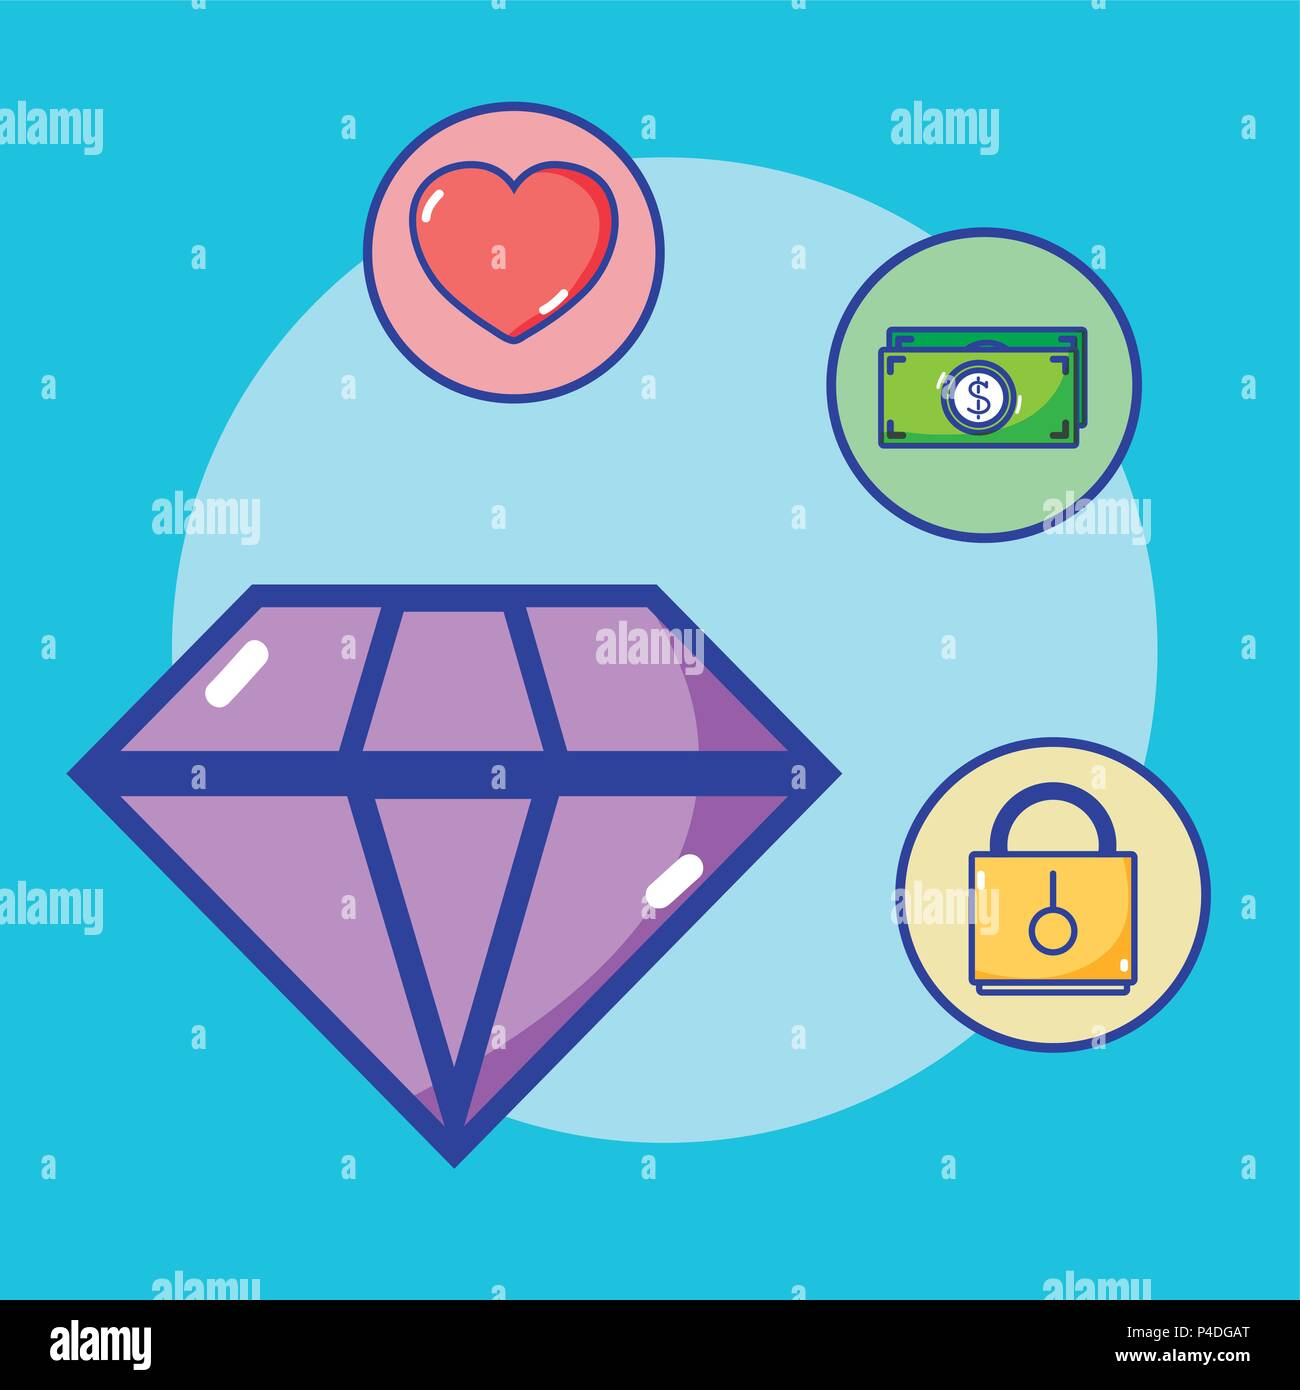 Money and investing - Stock Image